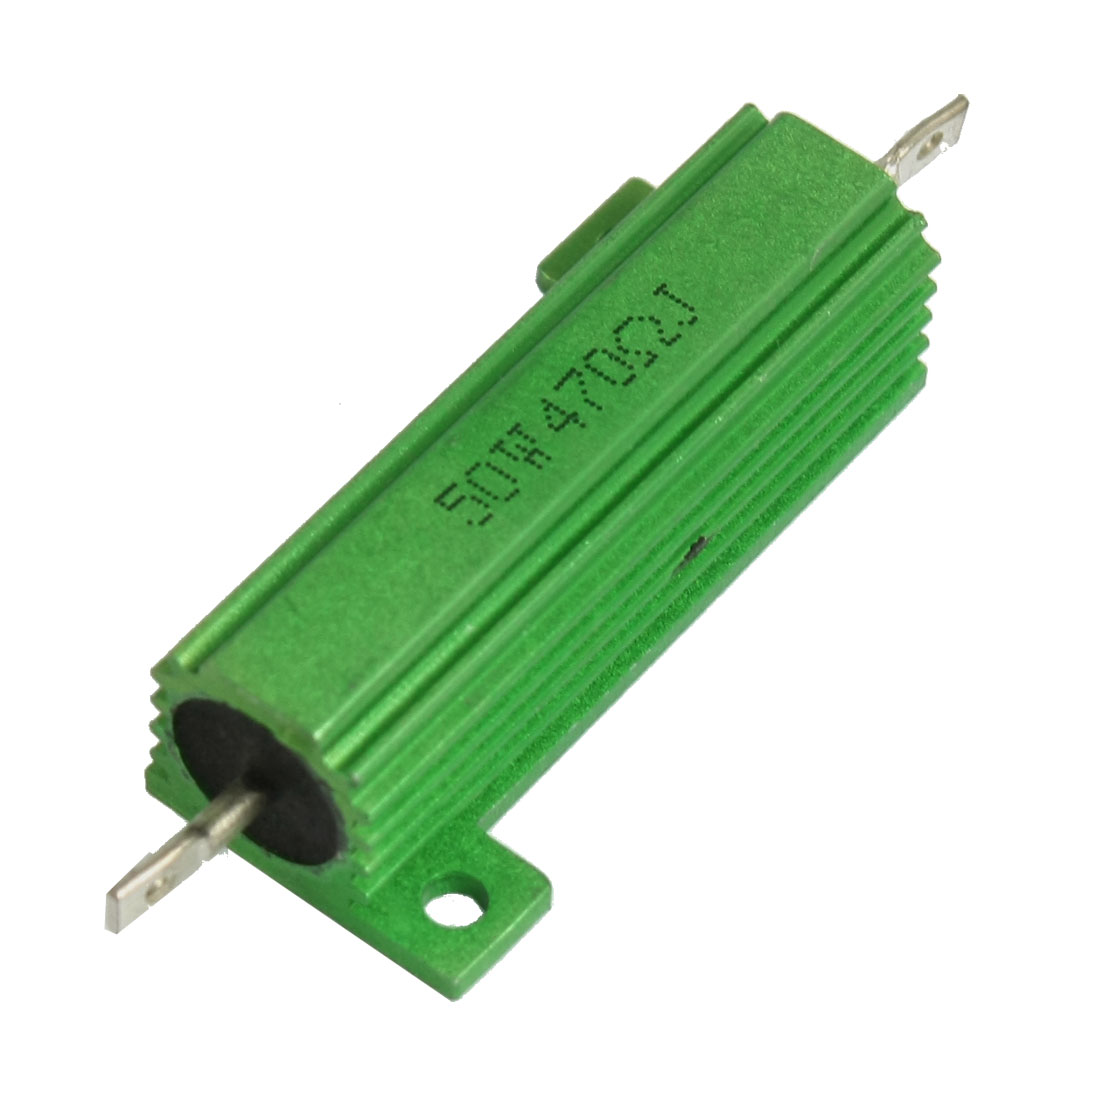 50W 470 Ohm Green Aluminium Chassis Mounted Wirewound Resistor